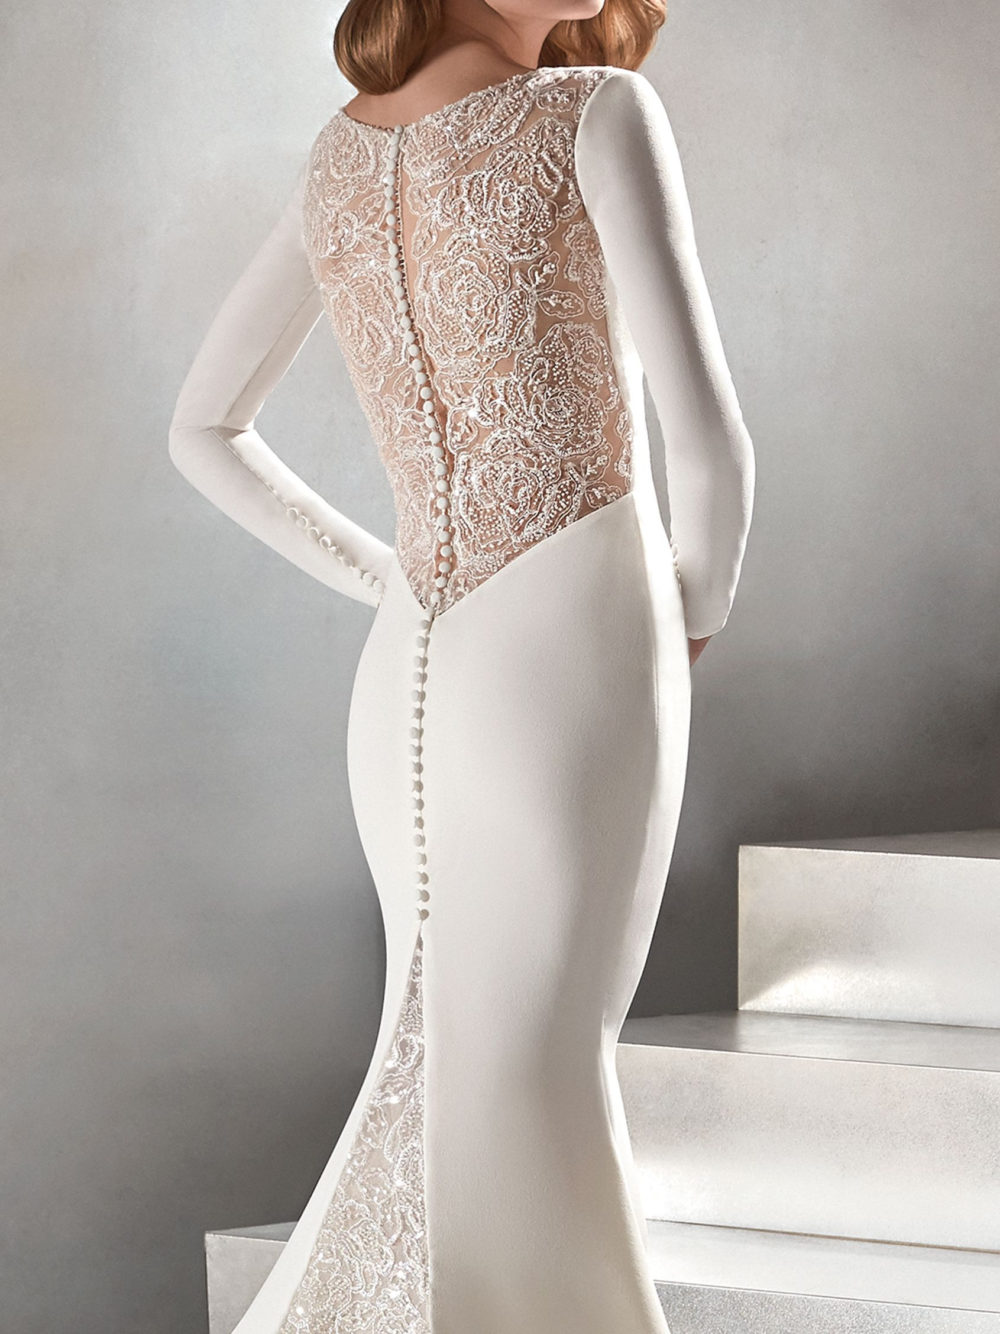 Pronovias Atelier Caceres Wedding Dress 2020 Back Detail